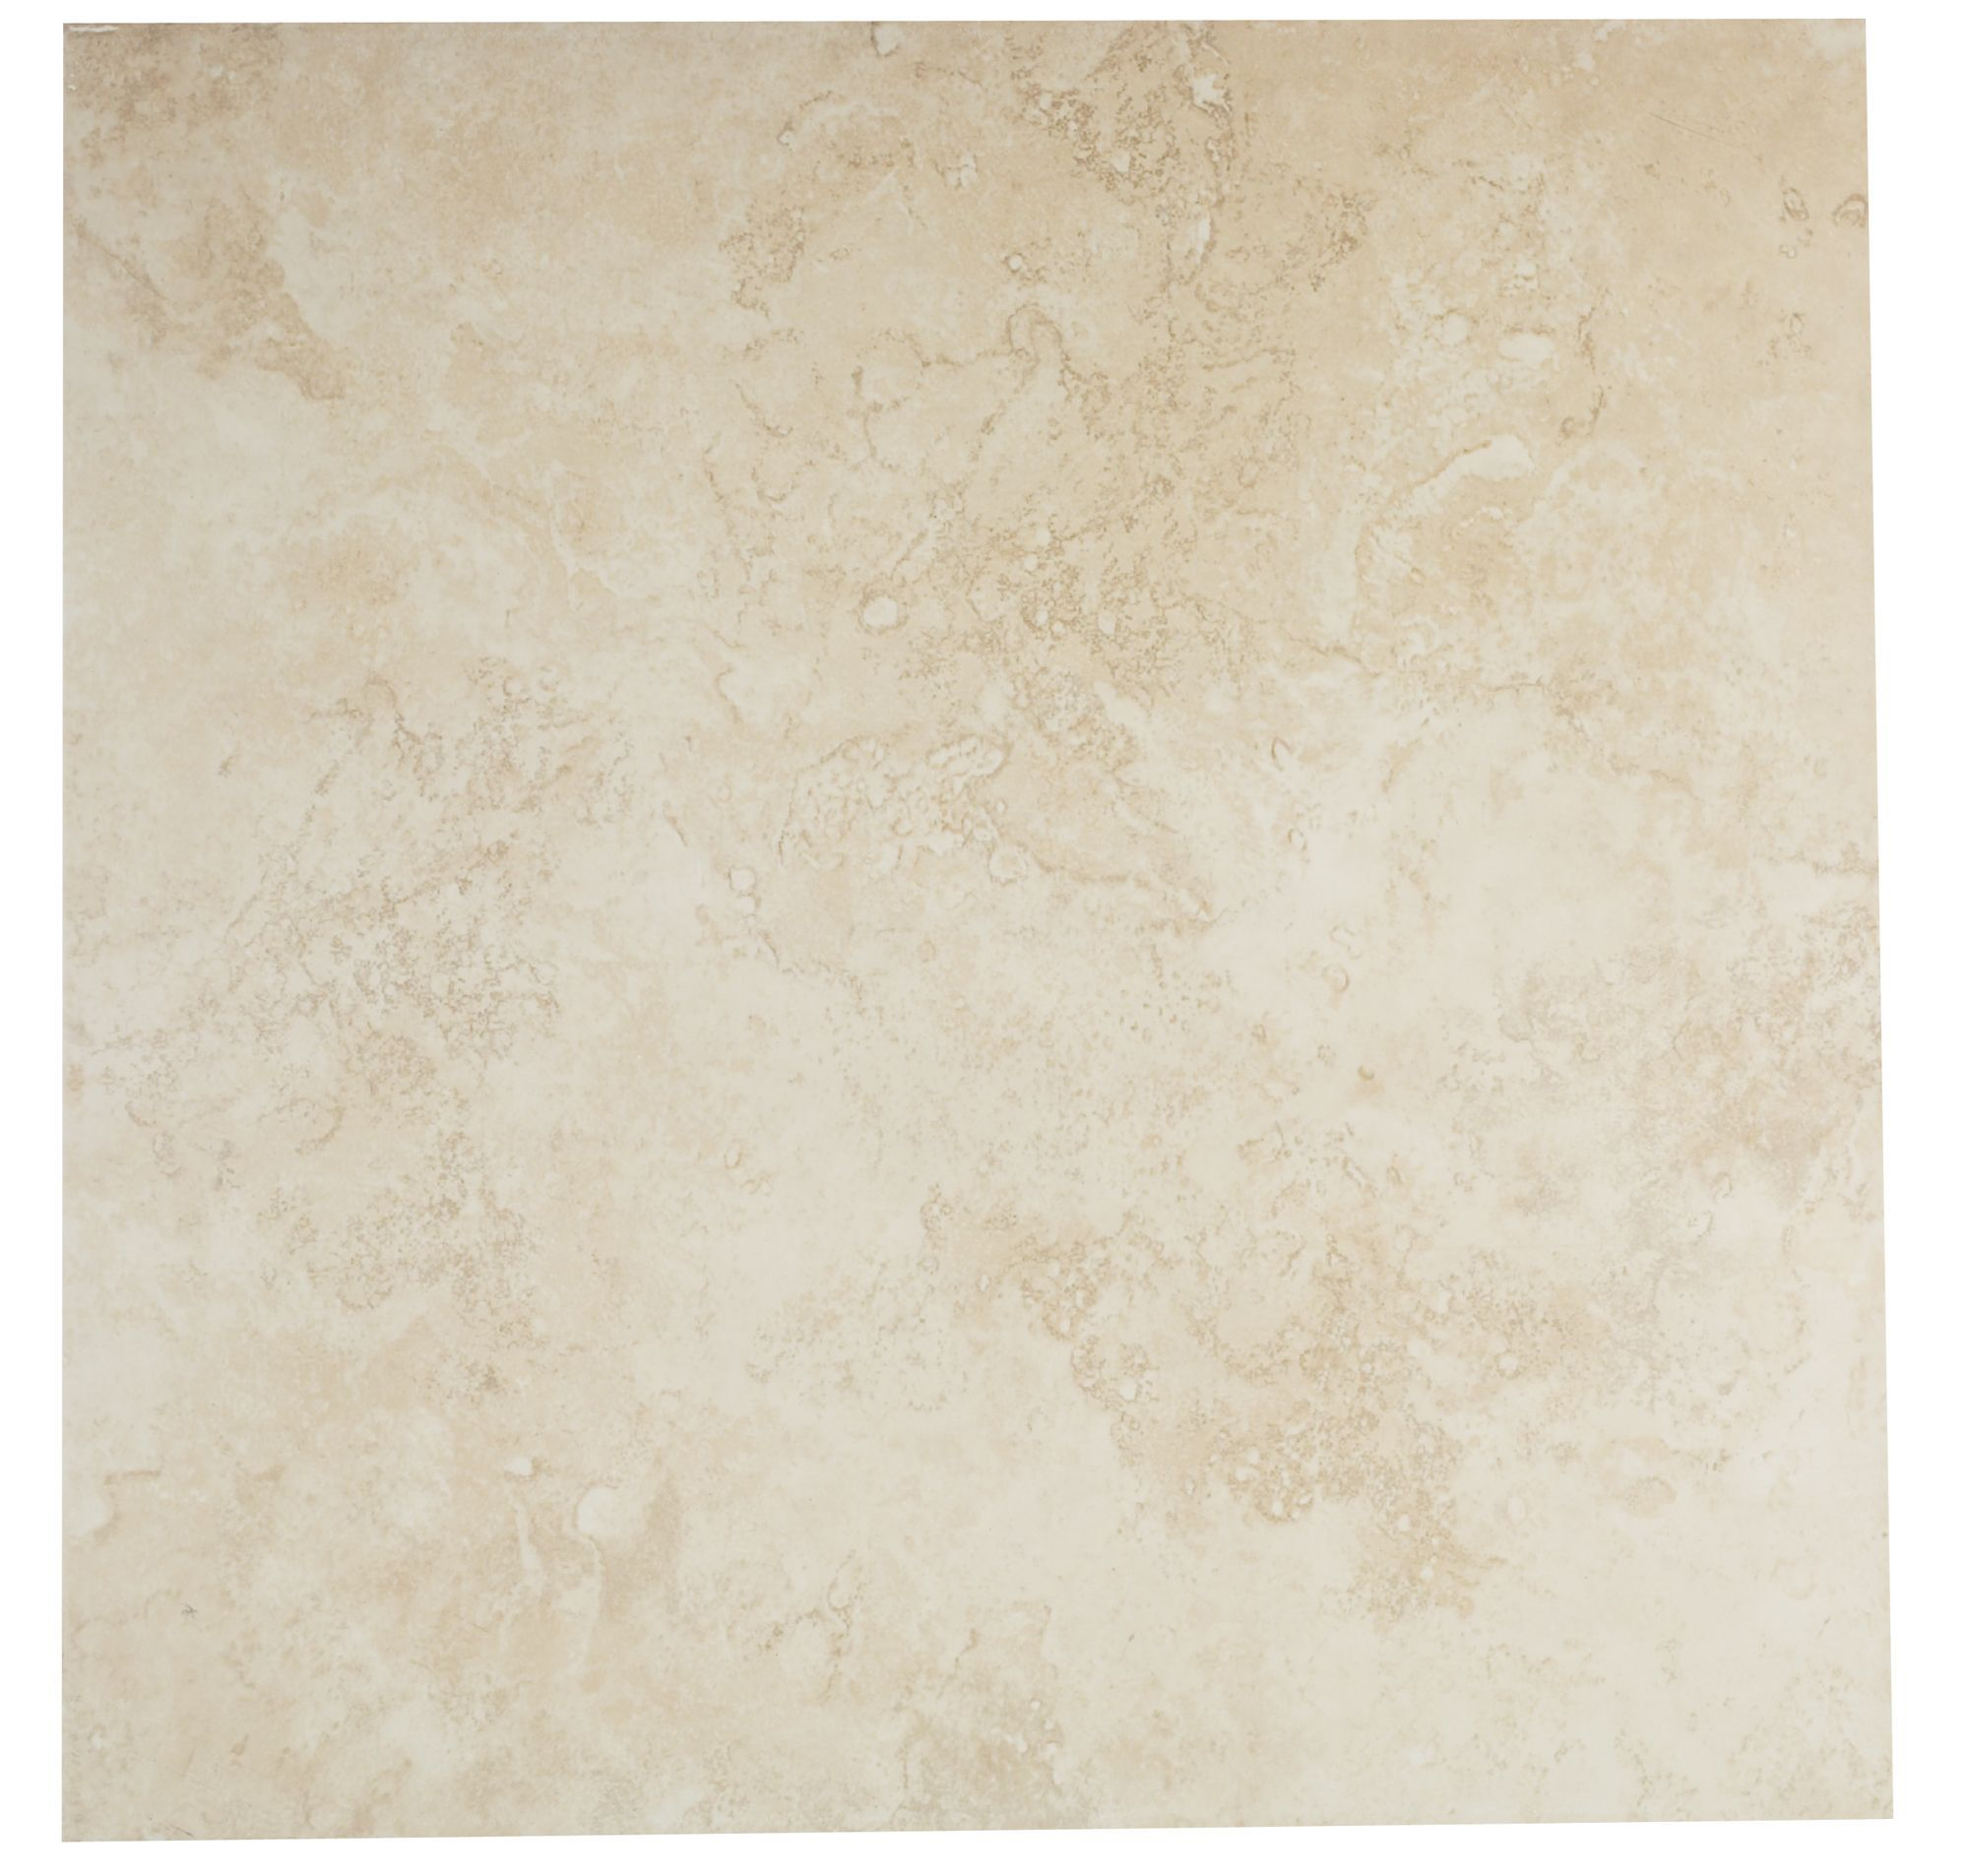 Urban Cement Cream Stone Effect Ceramic Wall Floor Tile: Pin By Khan Khan On Ideas For The Kitchen